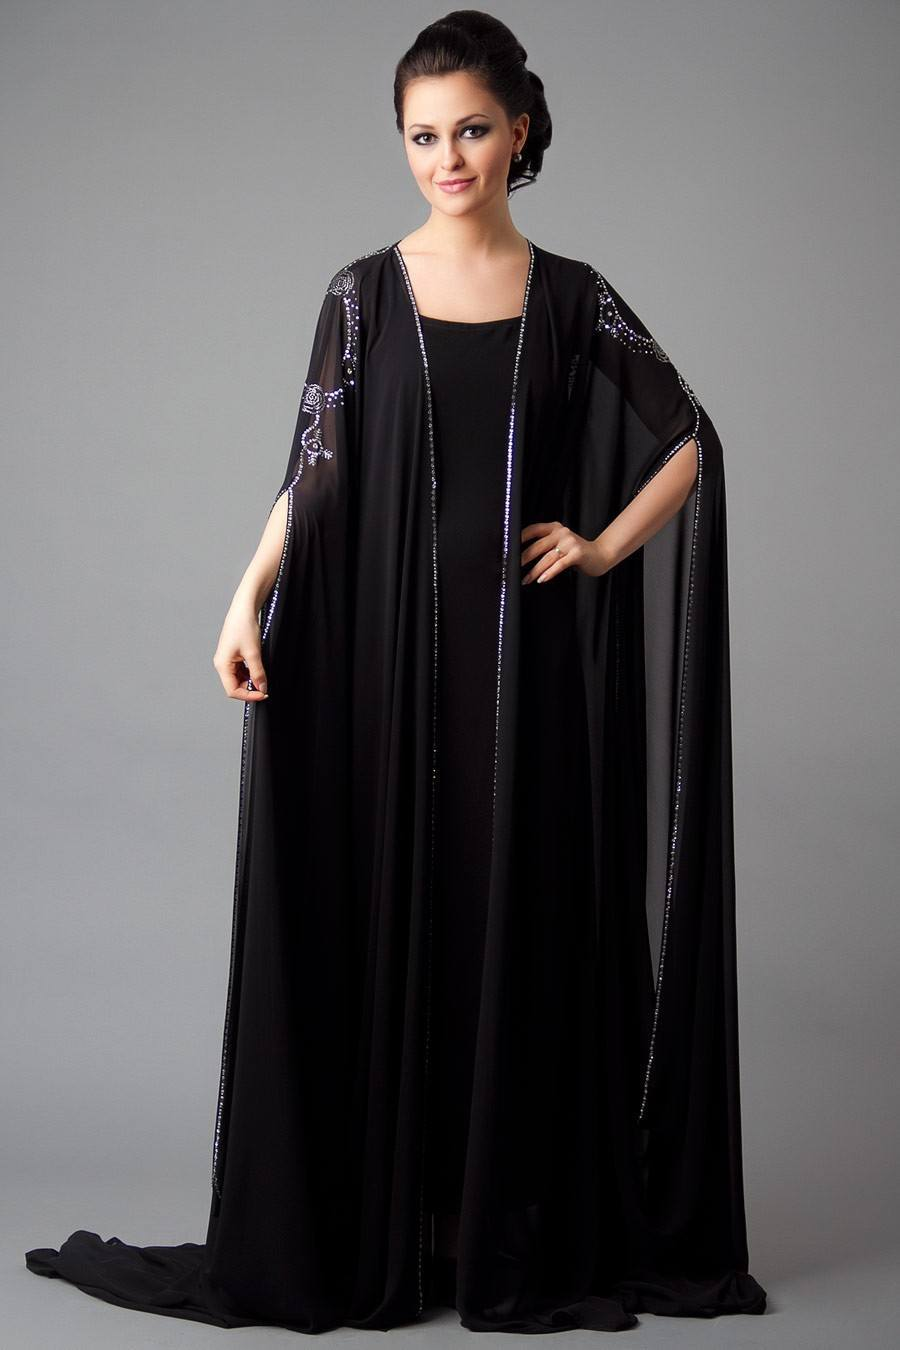 f46f7f7c1de2 15 Most Popular Dubai Style embroidered Abayas